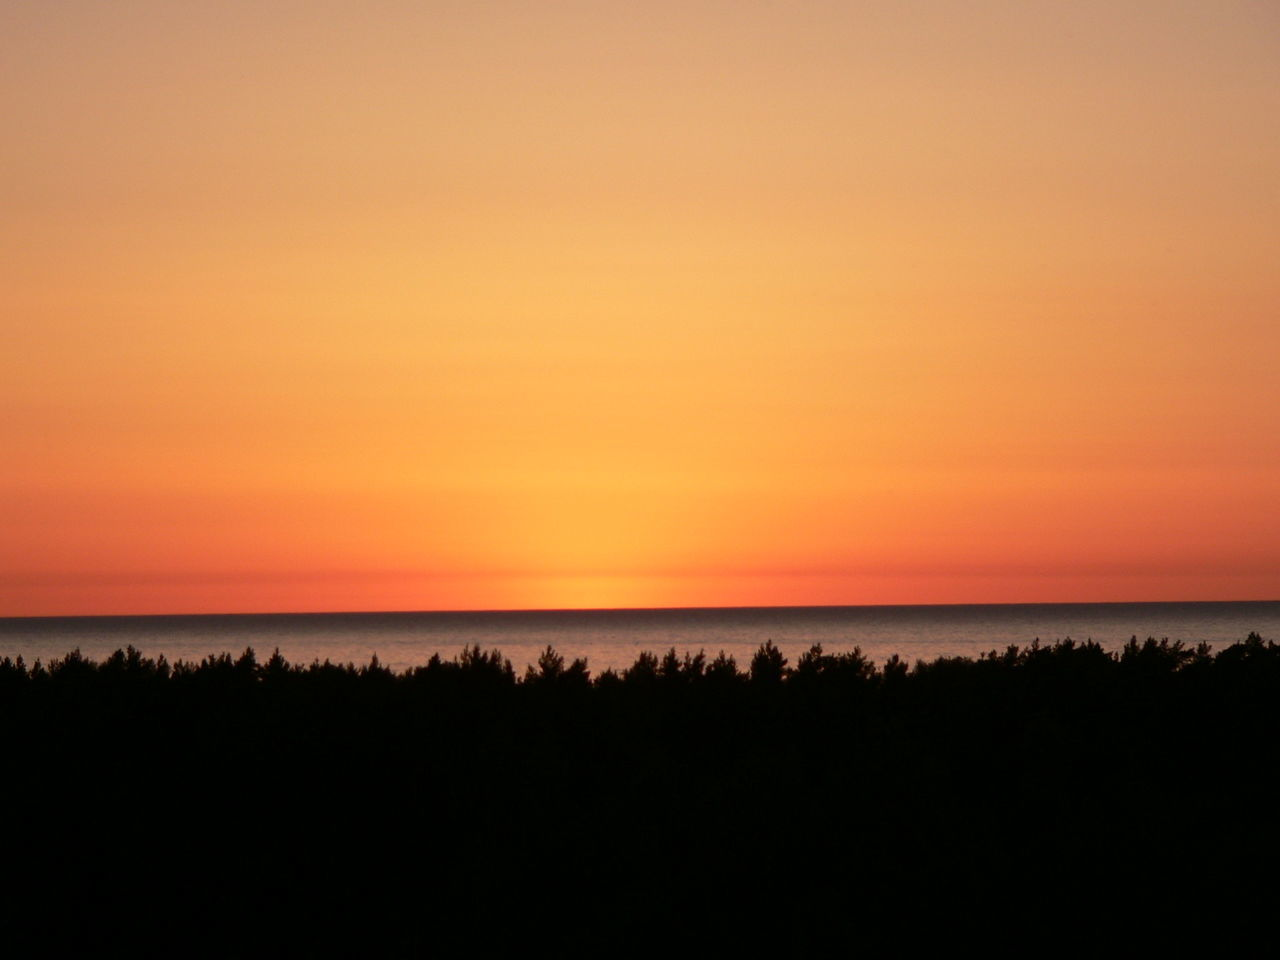 Sunset Lithuania, Palanga Baltic Sea Nature Beach Beauty In Nature Horizon Over Water Idyllic Nature No People Orange Color Outdoors Palanga Red Sky Scenics Sea Silhouette Sky Sunset Tranquil Scene Tranquility Water